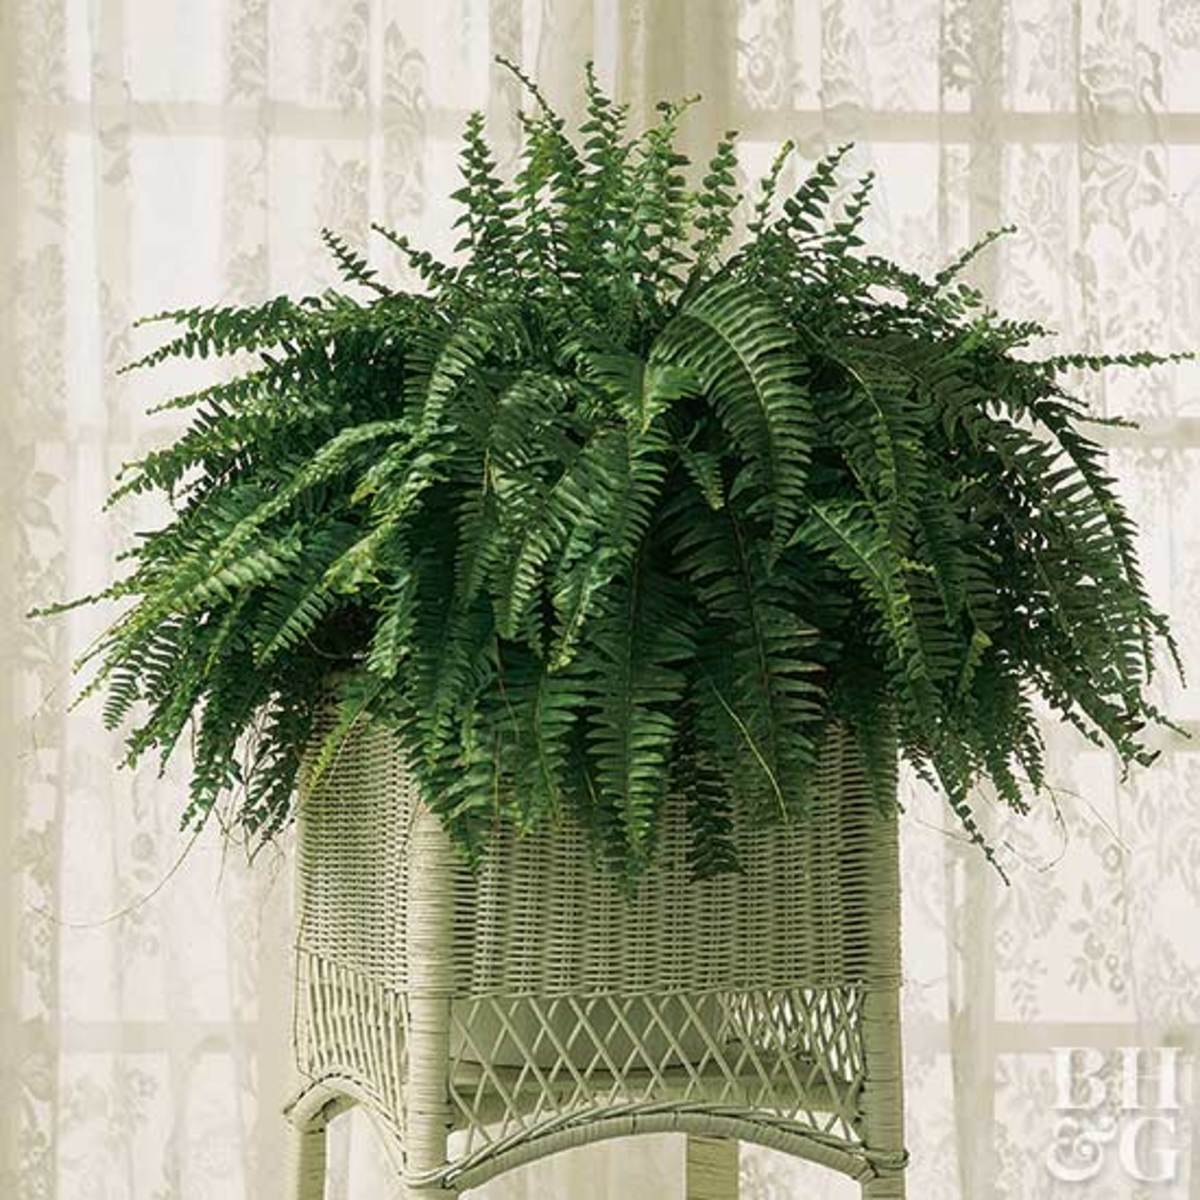 Boston ferns have made a popular comeback.